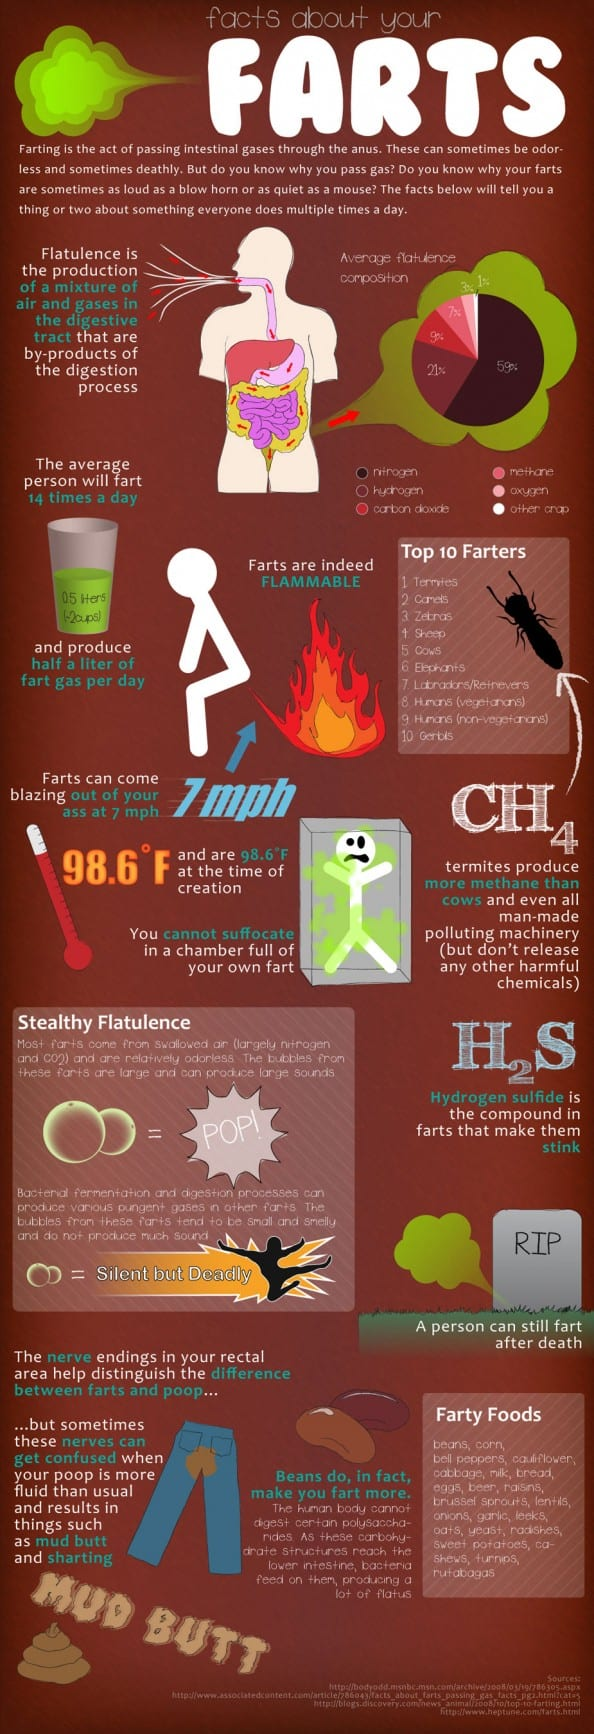 Facts About Your Farts | Infographic